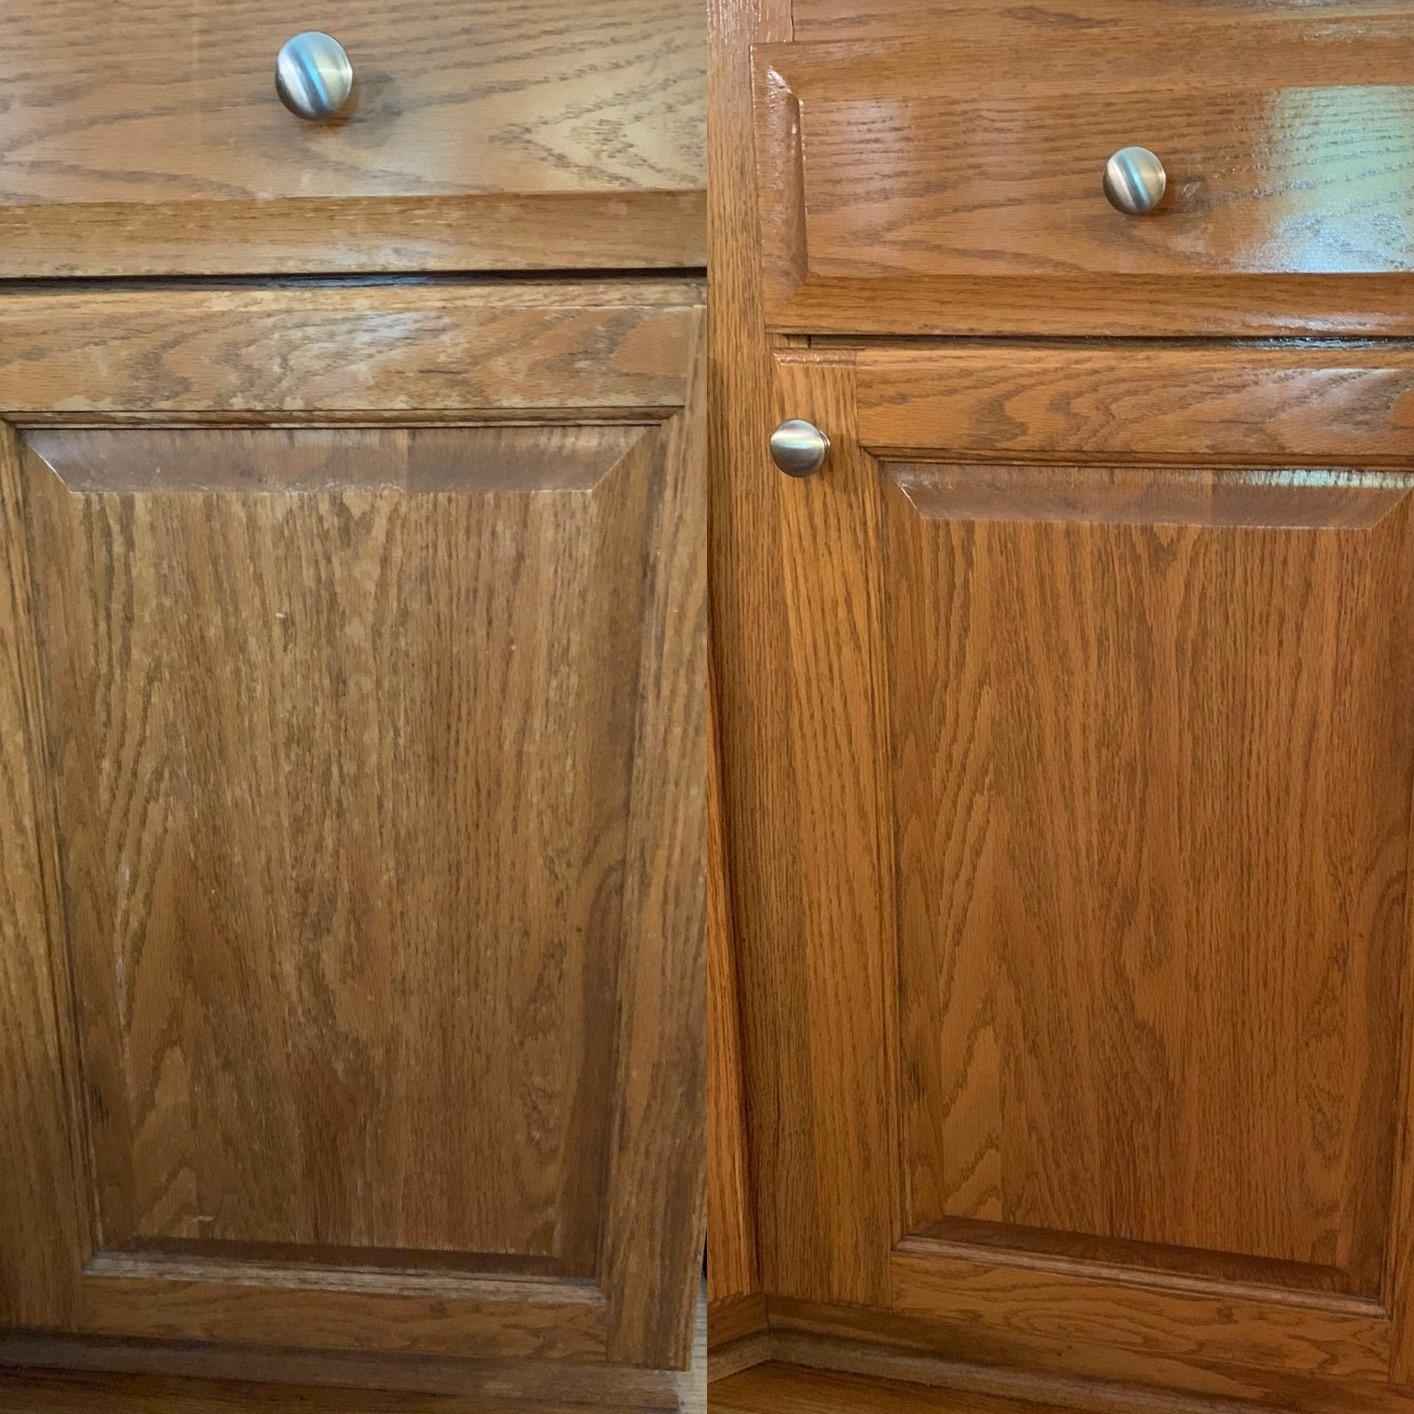 reviewer's wood cabinets before, with some water stains on the finish, and after, with no water stains and looking warmer and shinier